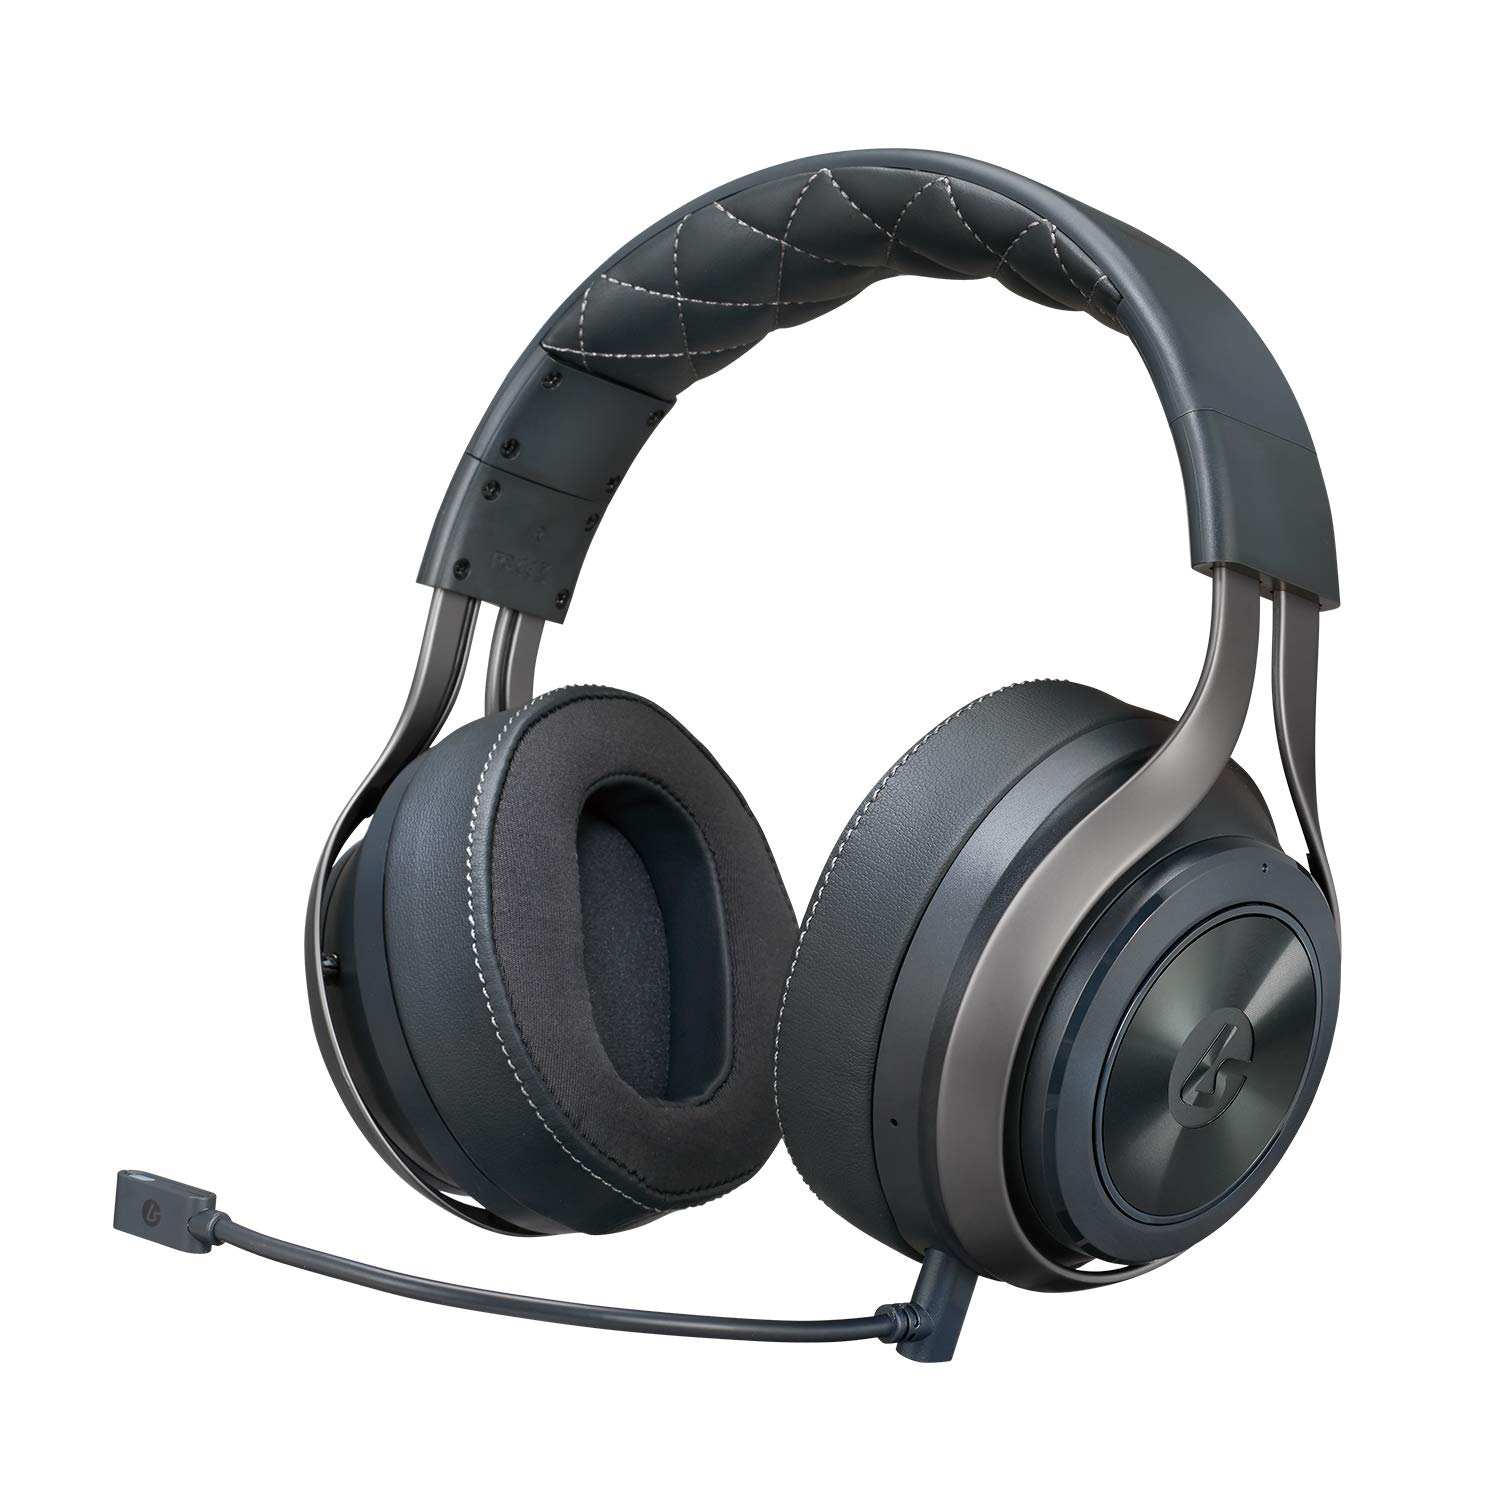 LucidSound LS41 Wireless Surround Sound Gaming Headset for PS4, Xbox One, PC, Nintendo Switch, Mac, DTS Headphone: X 7.1 Gaming headphones - PlayStation 4 by LucidSound